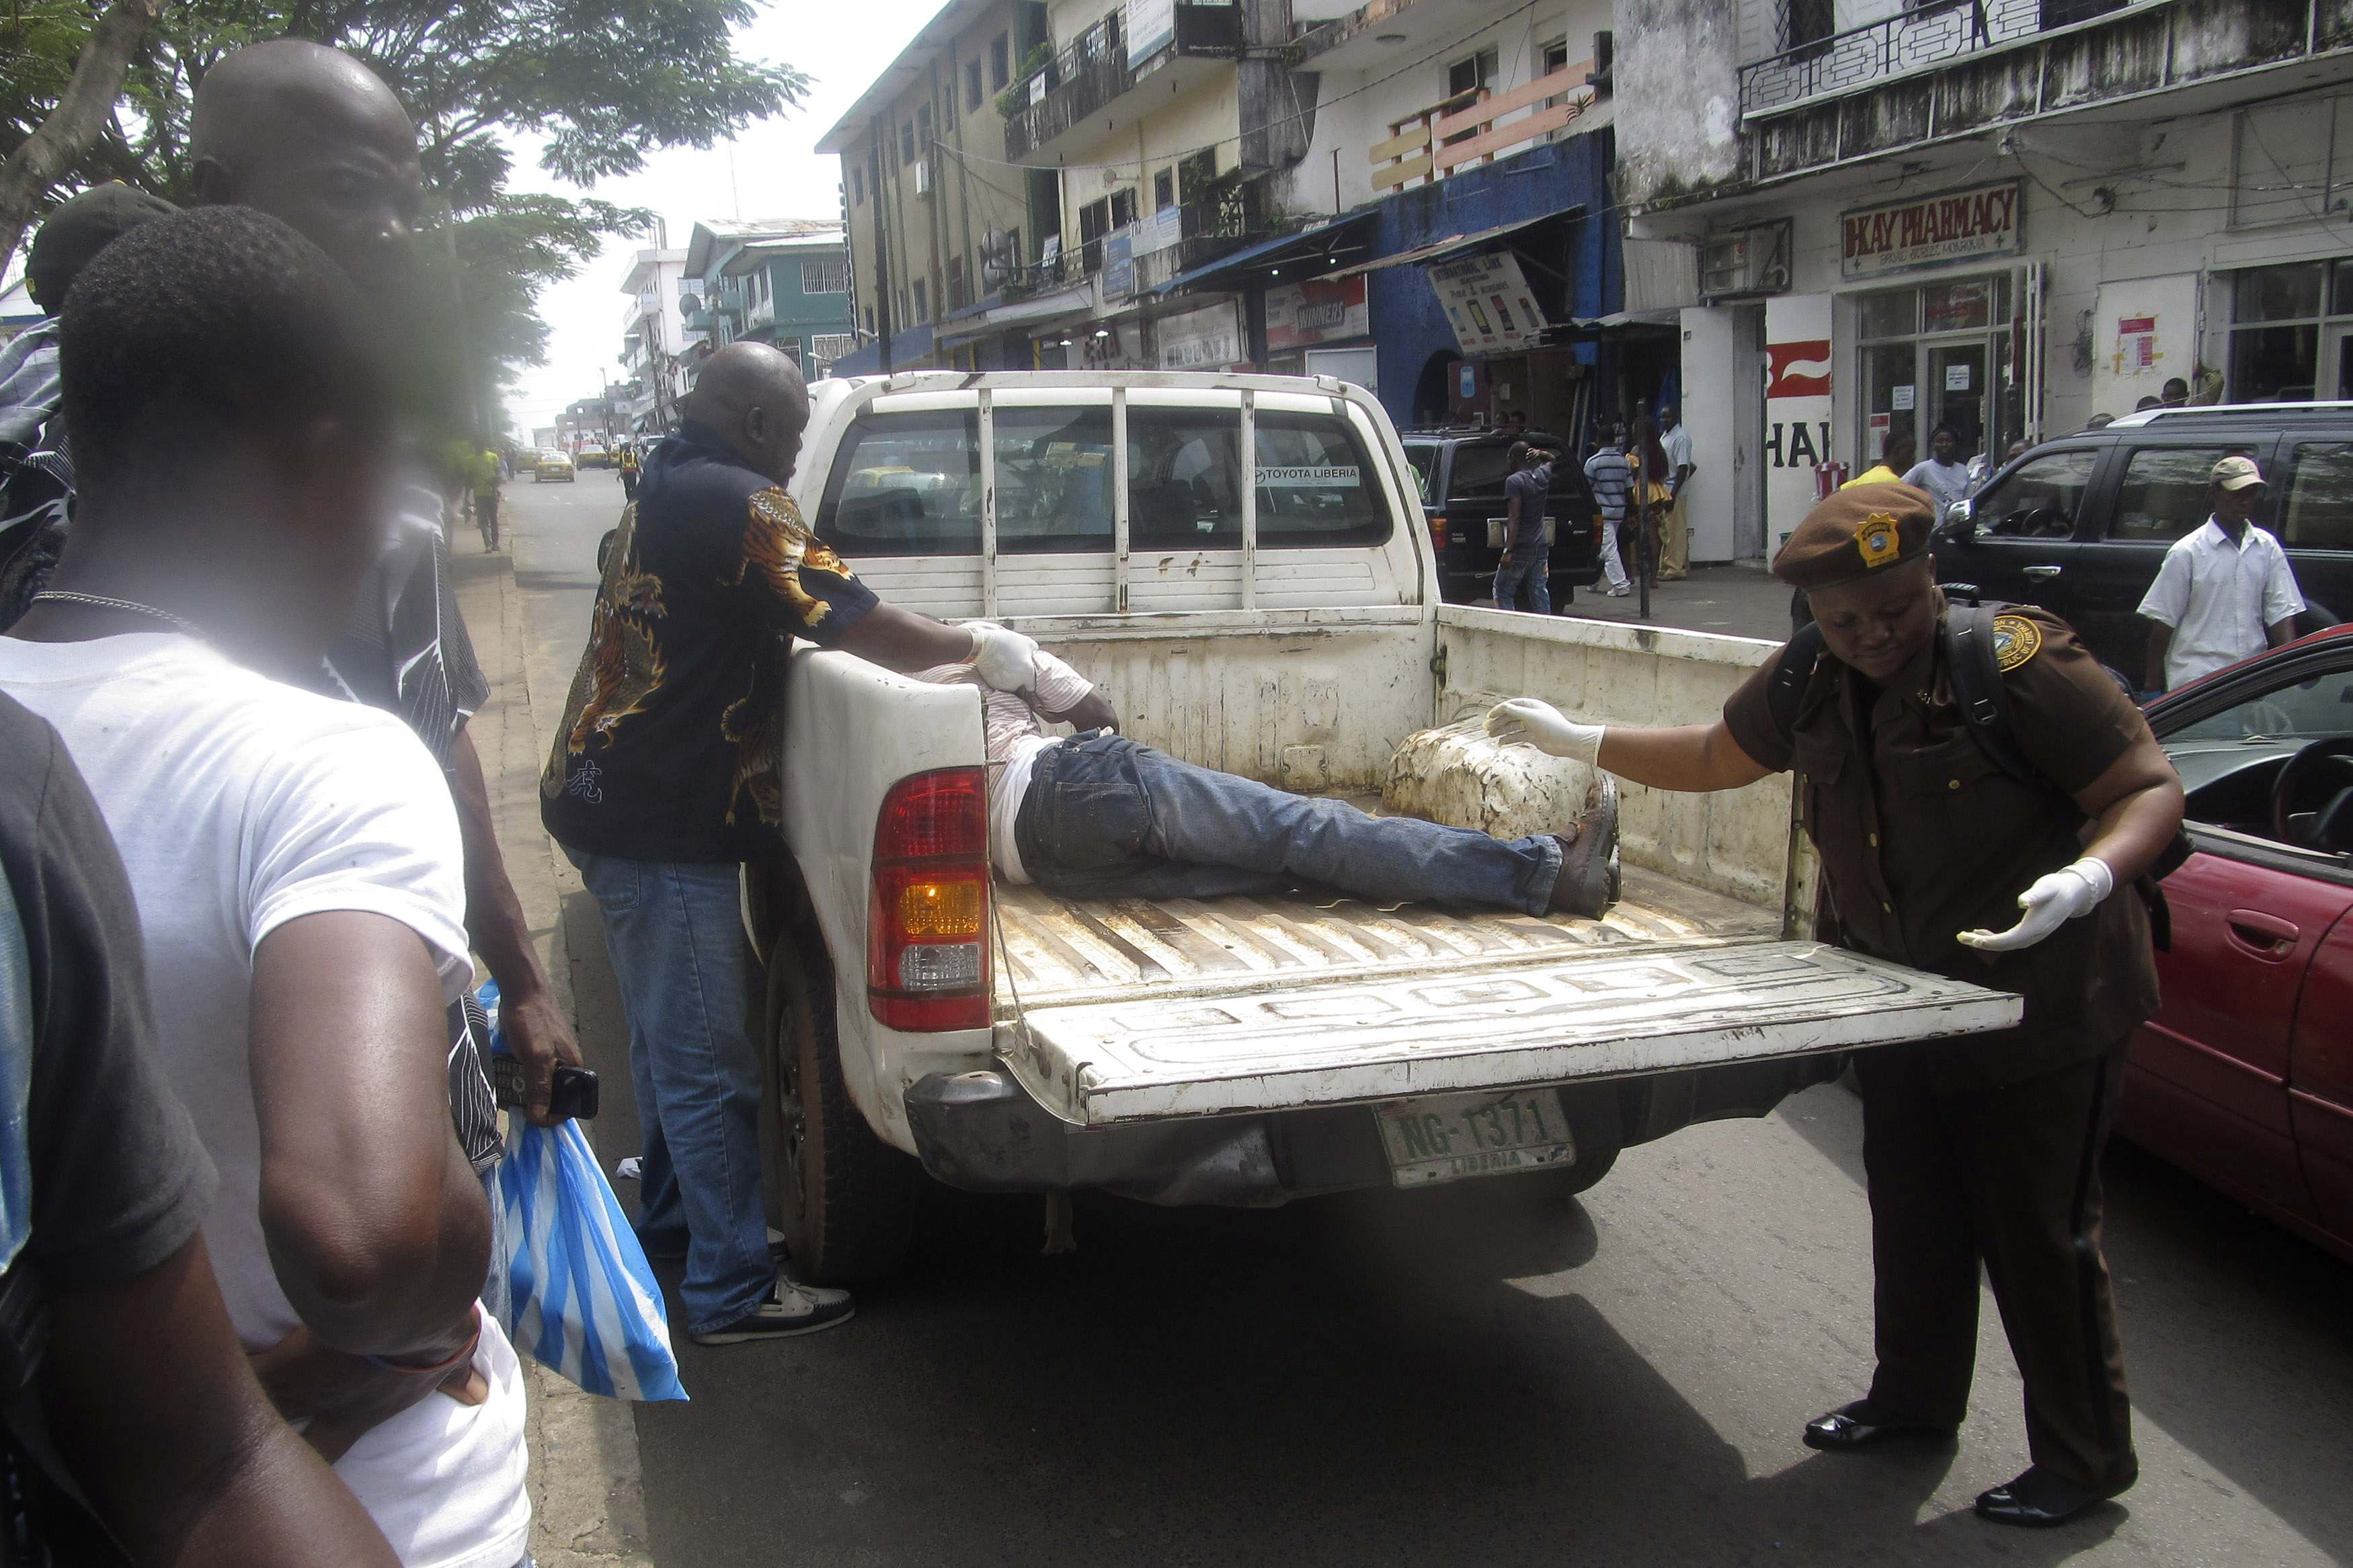 A man is carried away to be tested for Ebola after collapsing on a street in Monrovia